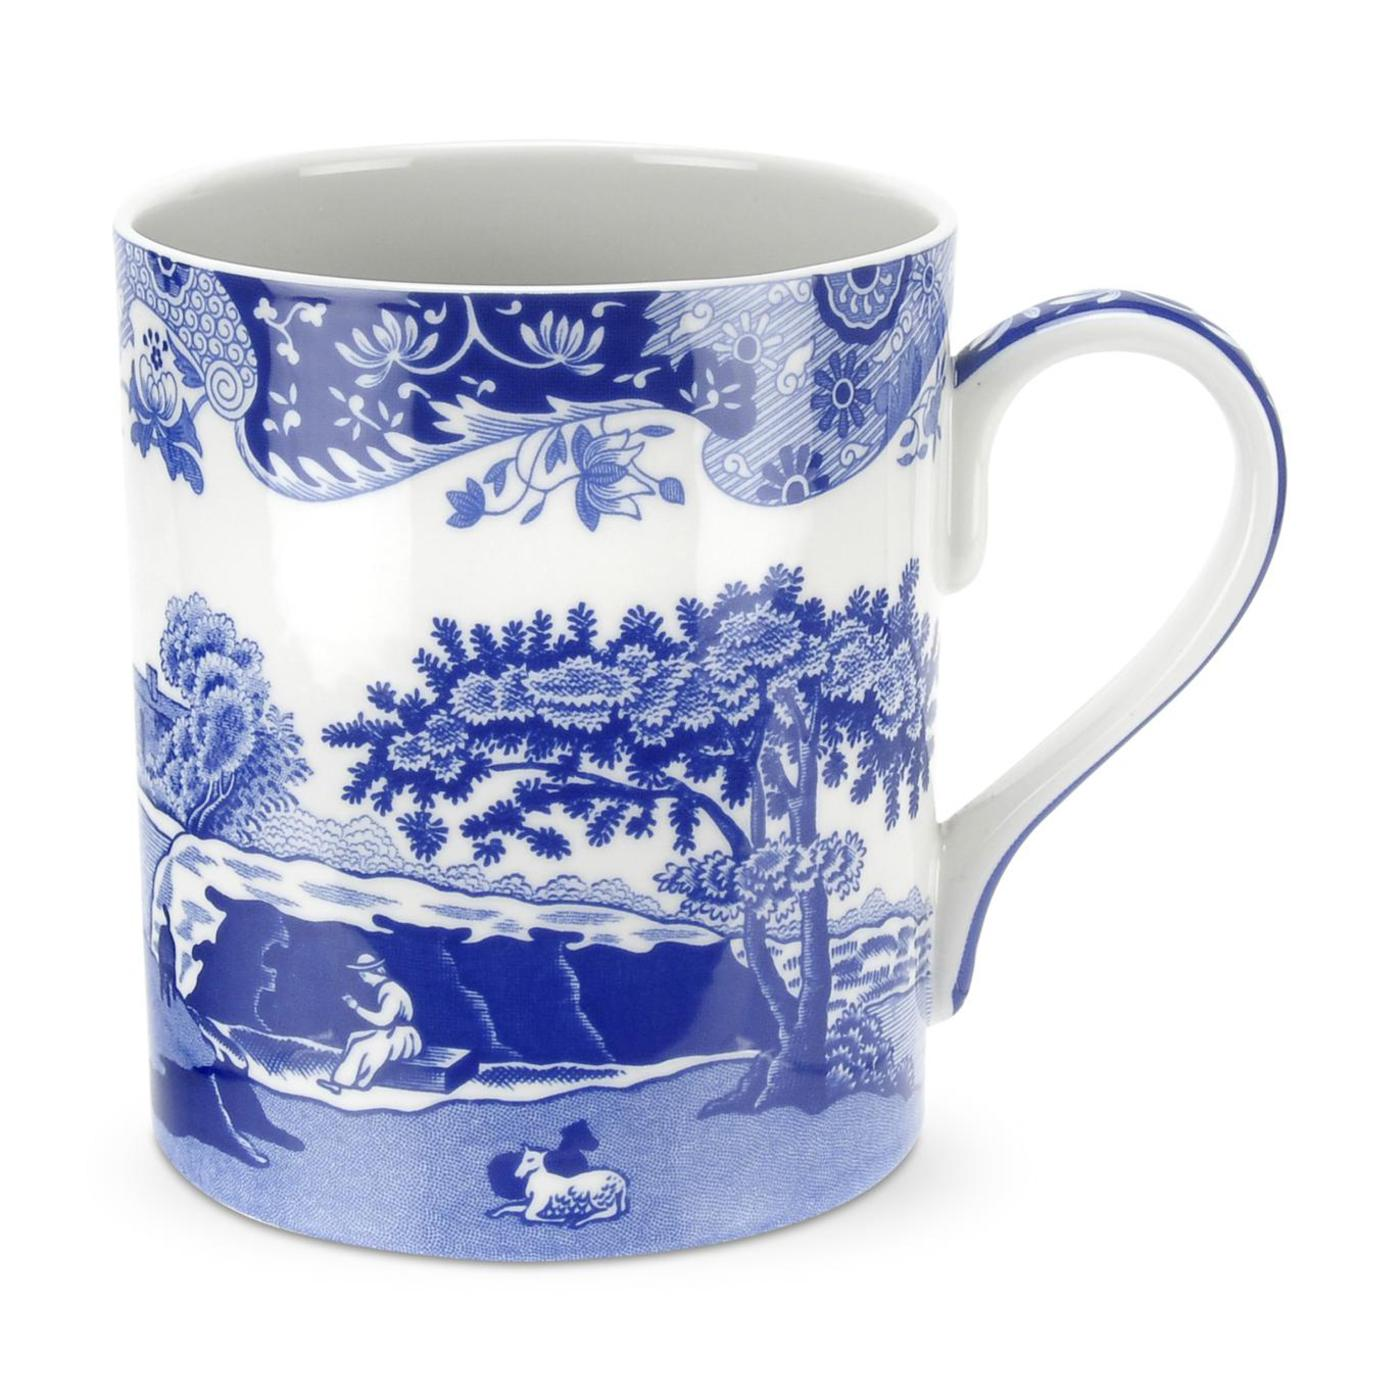 Spode Blue Italian Set of 4 16 ounce Mugs image number 0